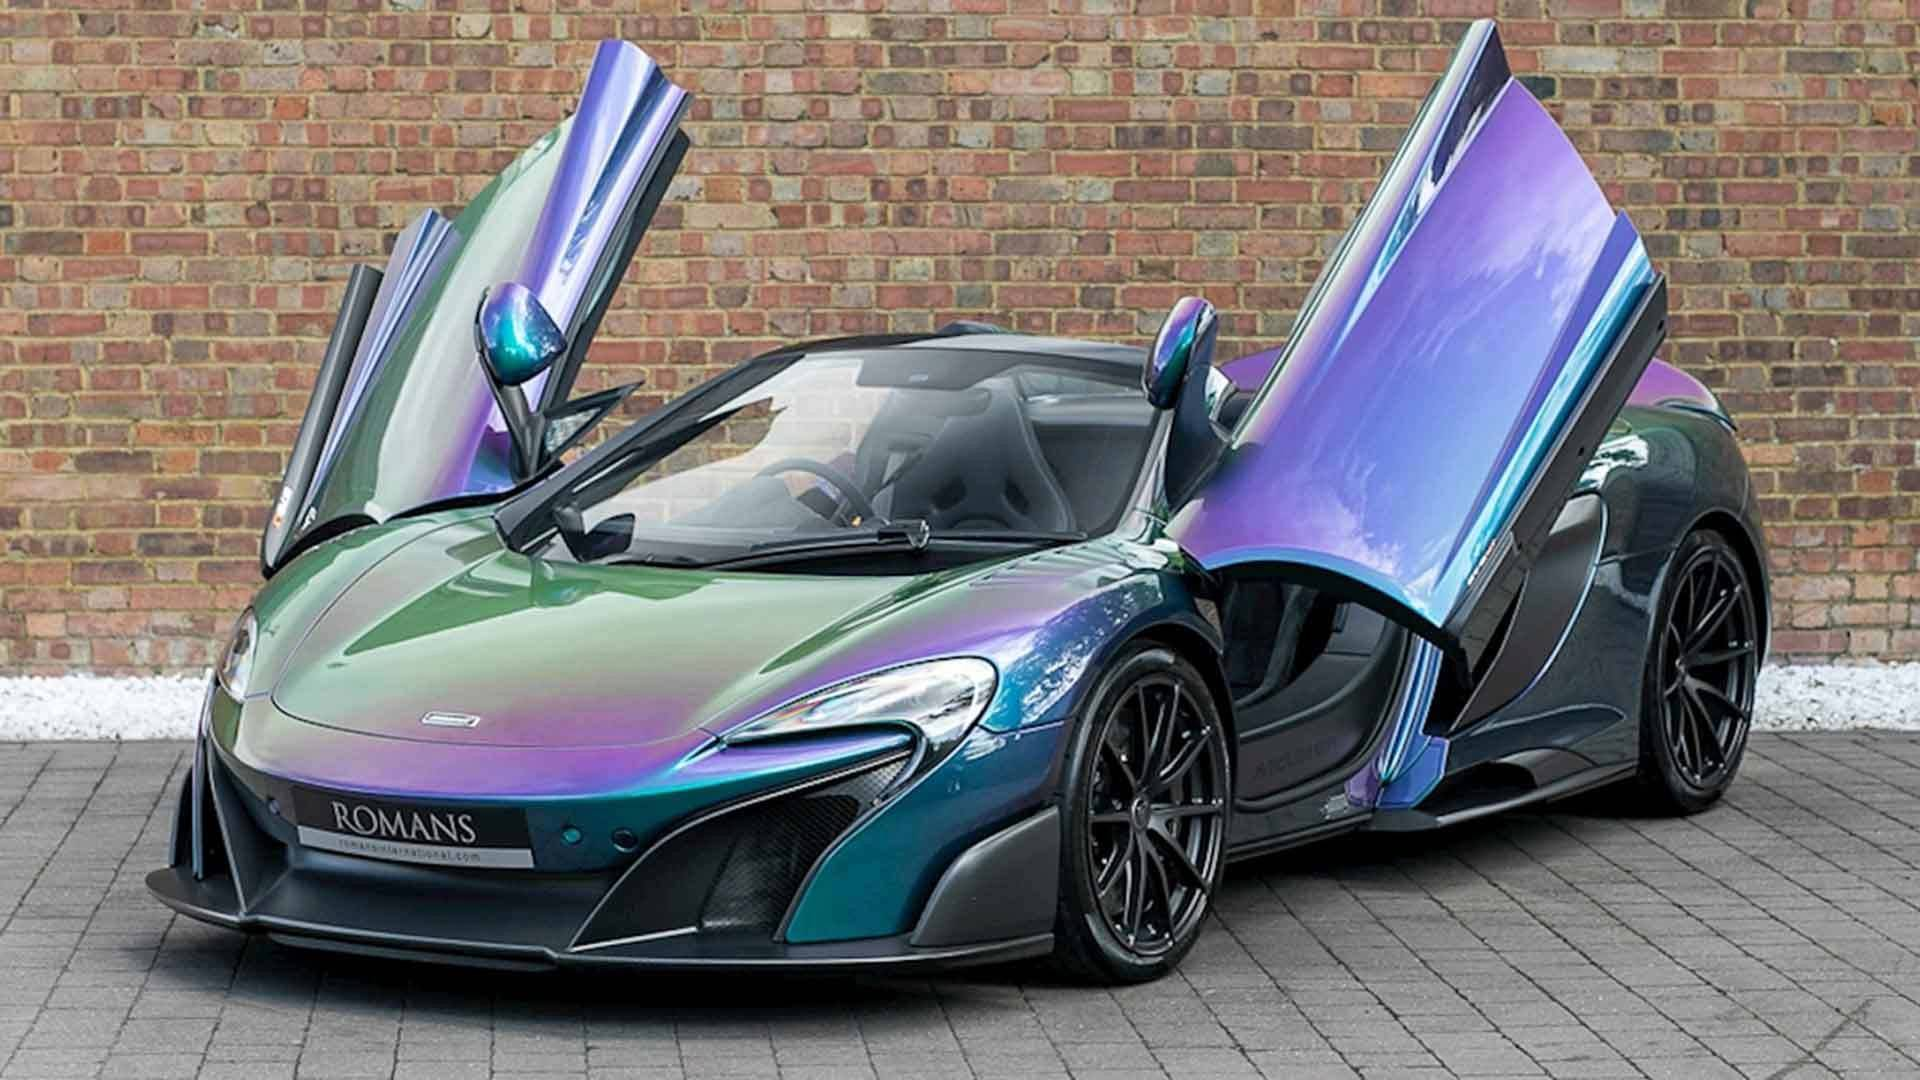 Cost To Paint A Car >> The Paint On This Mclaren 675lt Cost More Than A New Civic